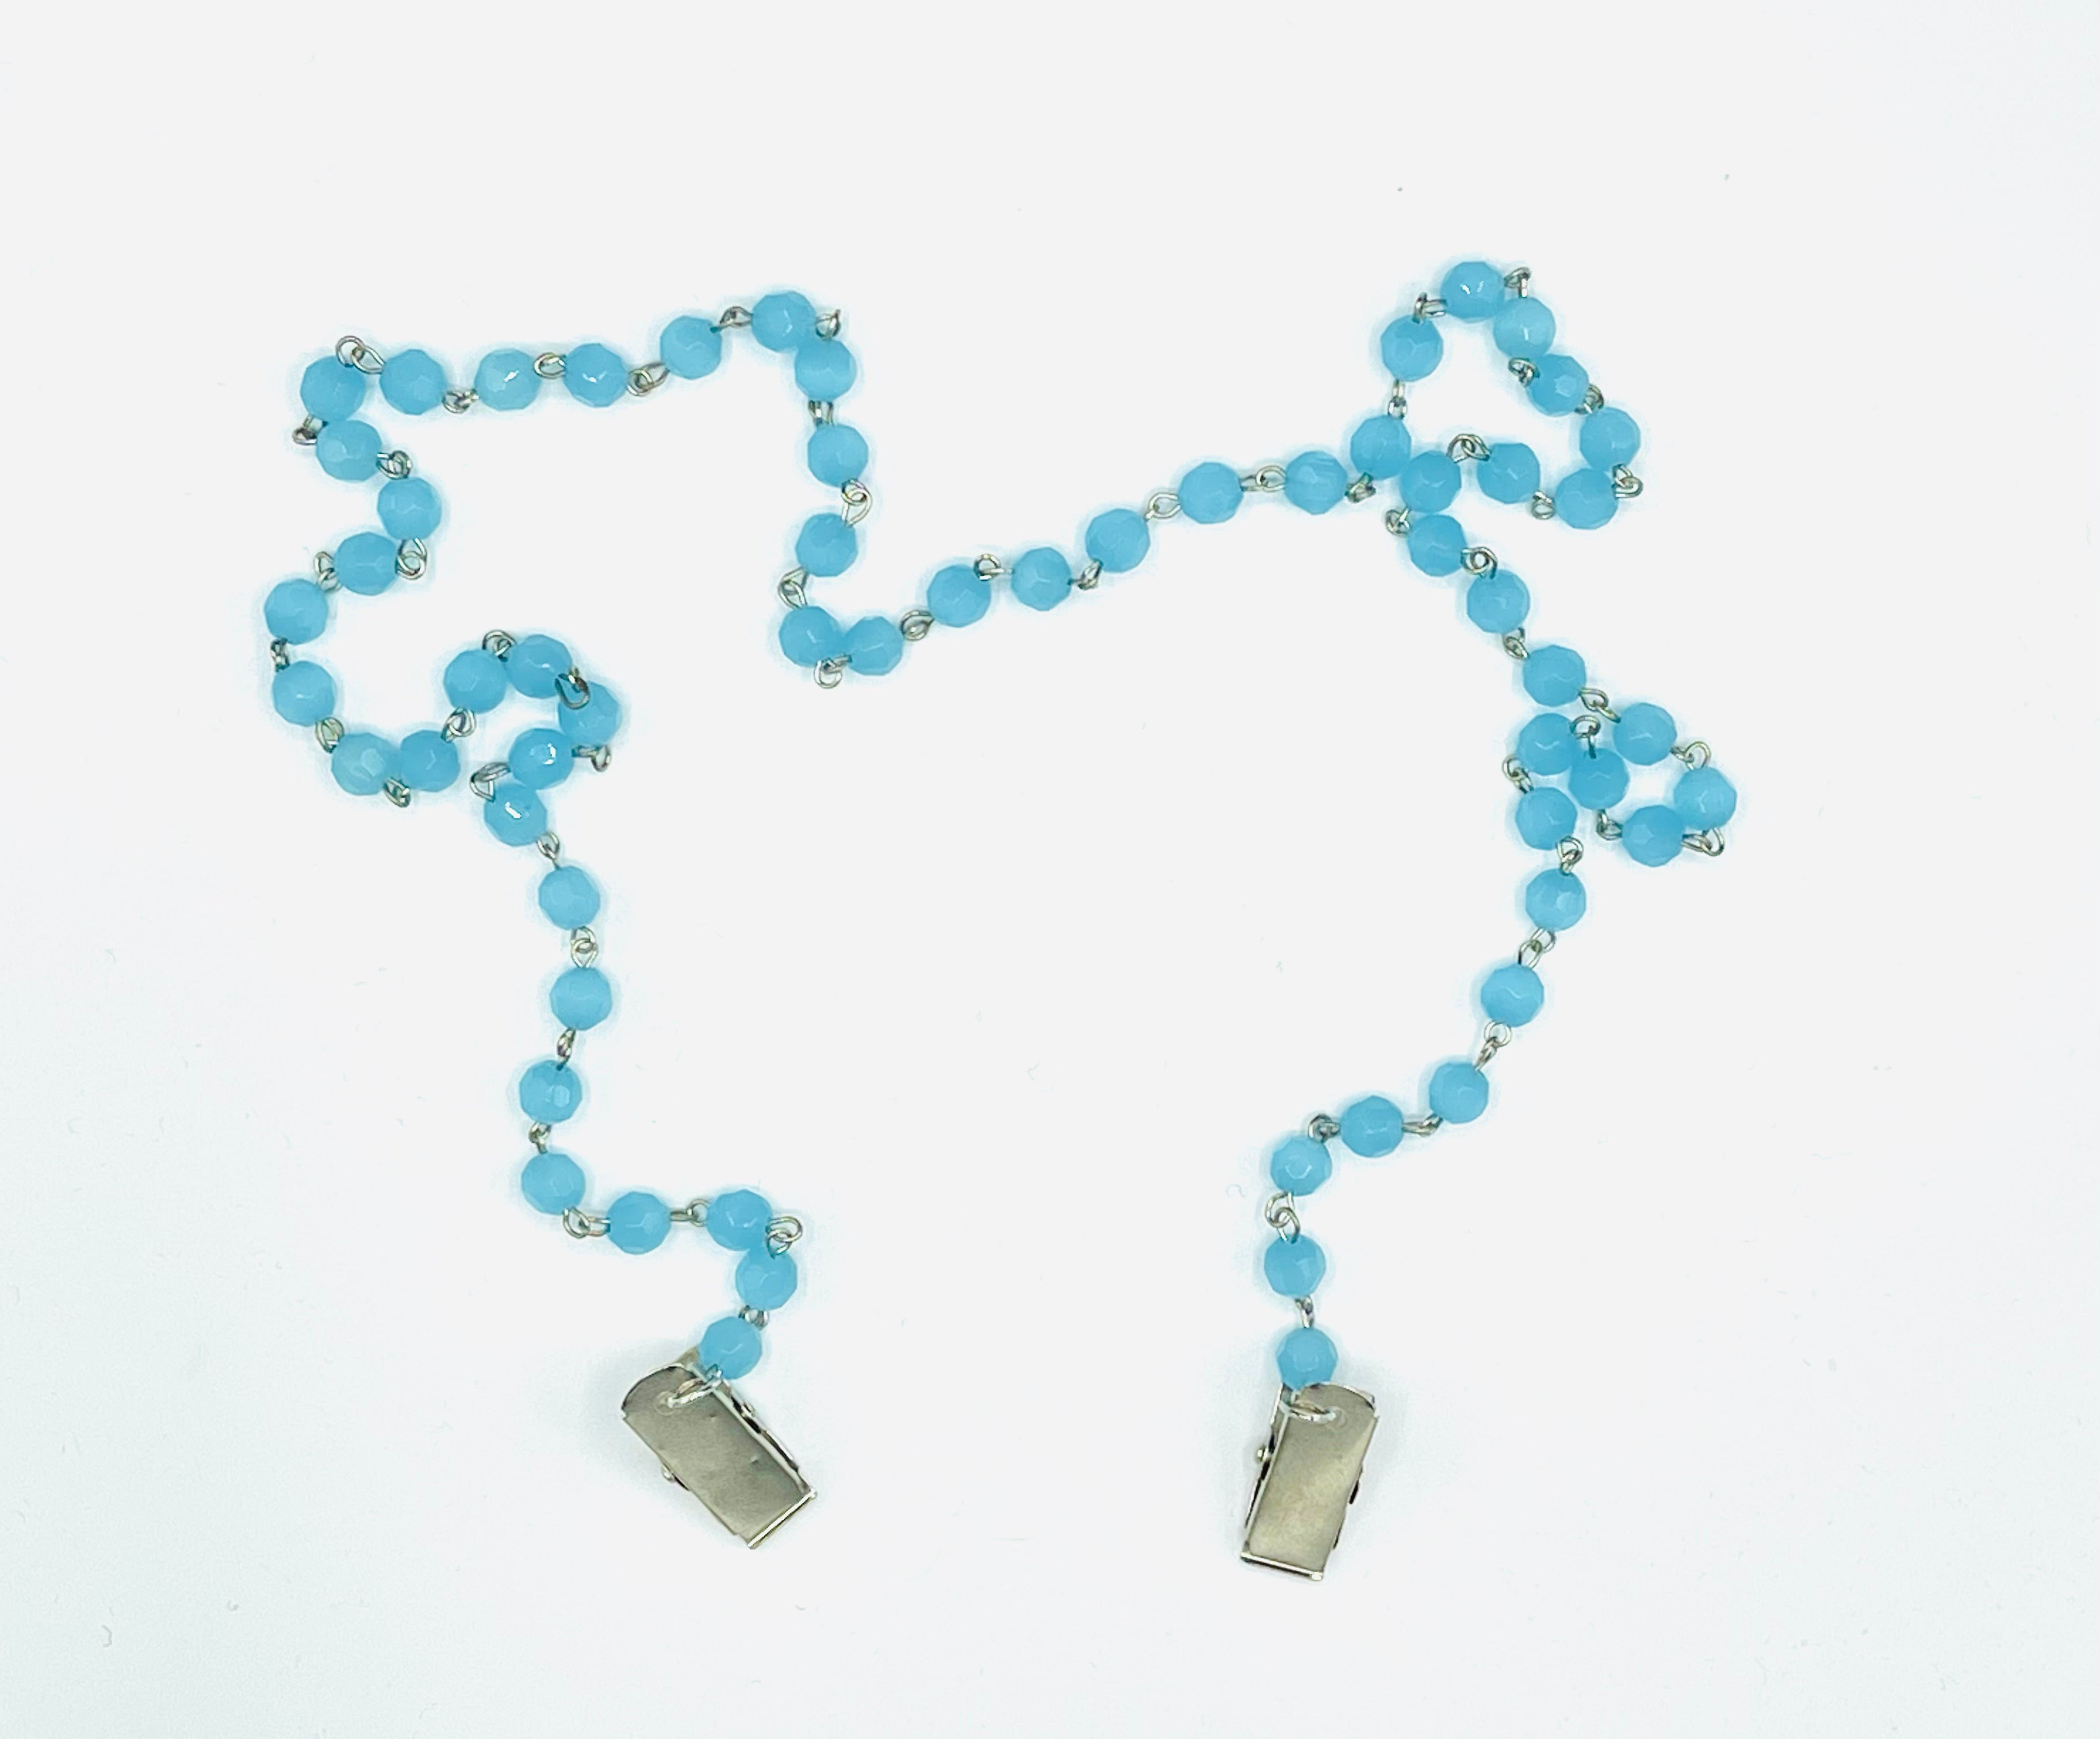 Baby Blue Rosary Chain - Just Released!